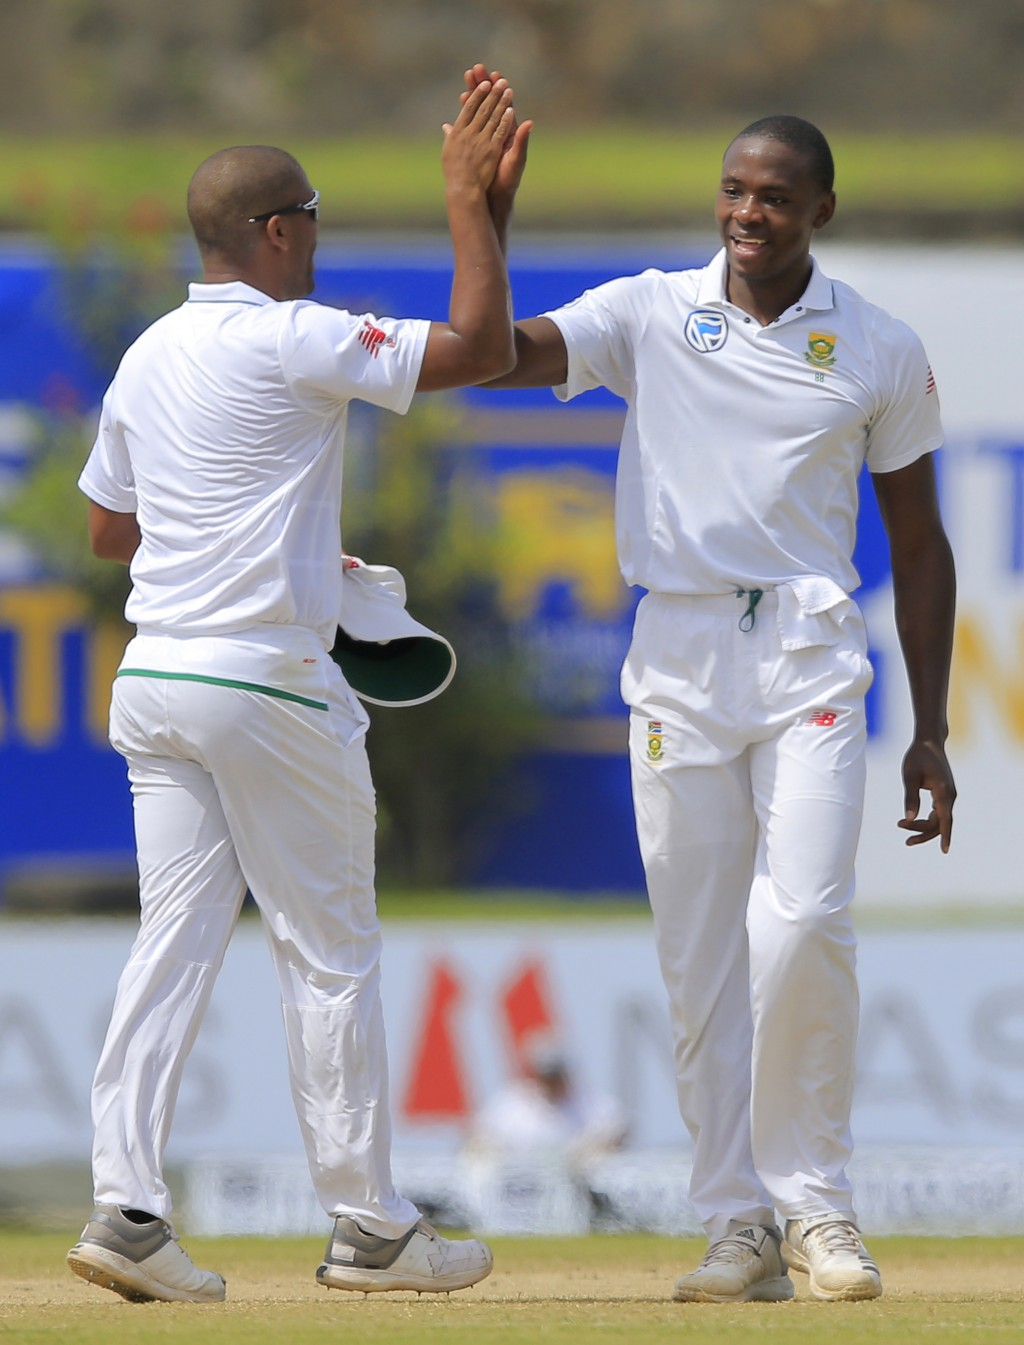 South Africa's Kagiso Rabada, right, celebrates with teammate Vernon Philander the dismissal of Sri Lanka's Niroshan Dickwella during the third day's